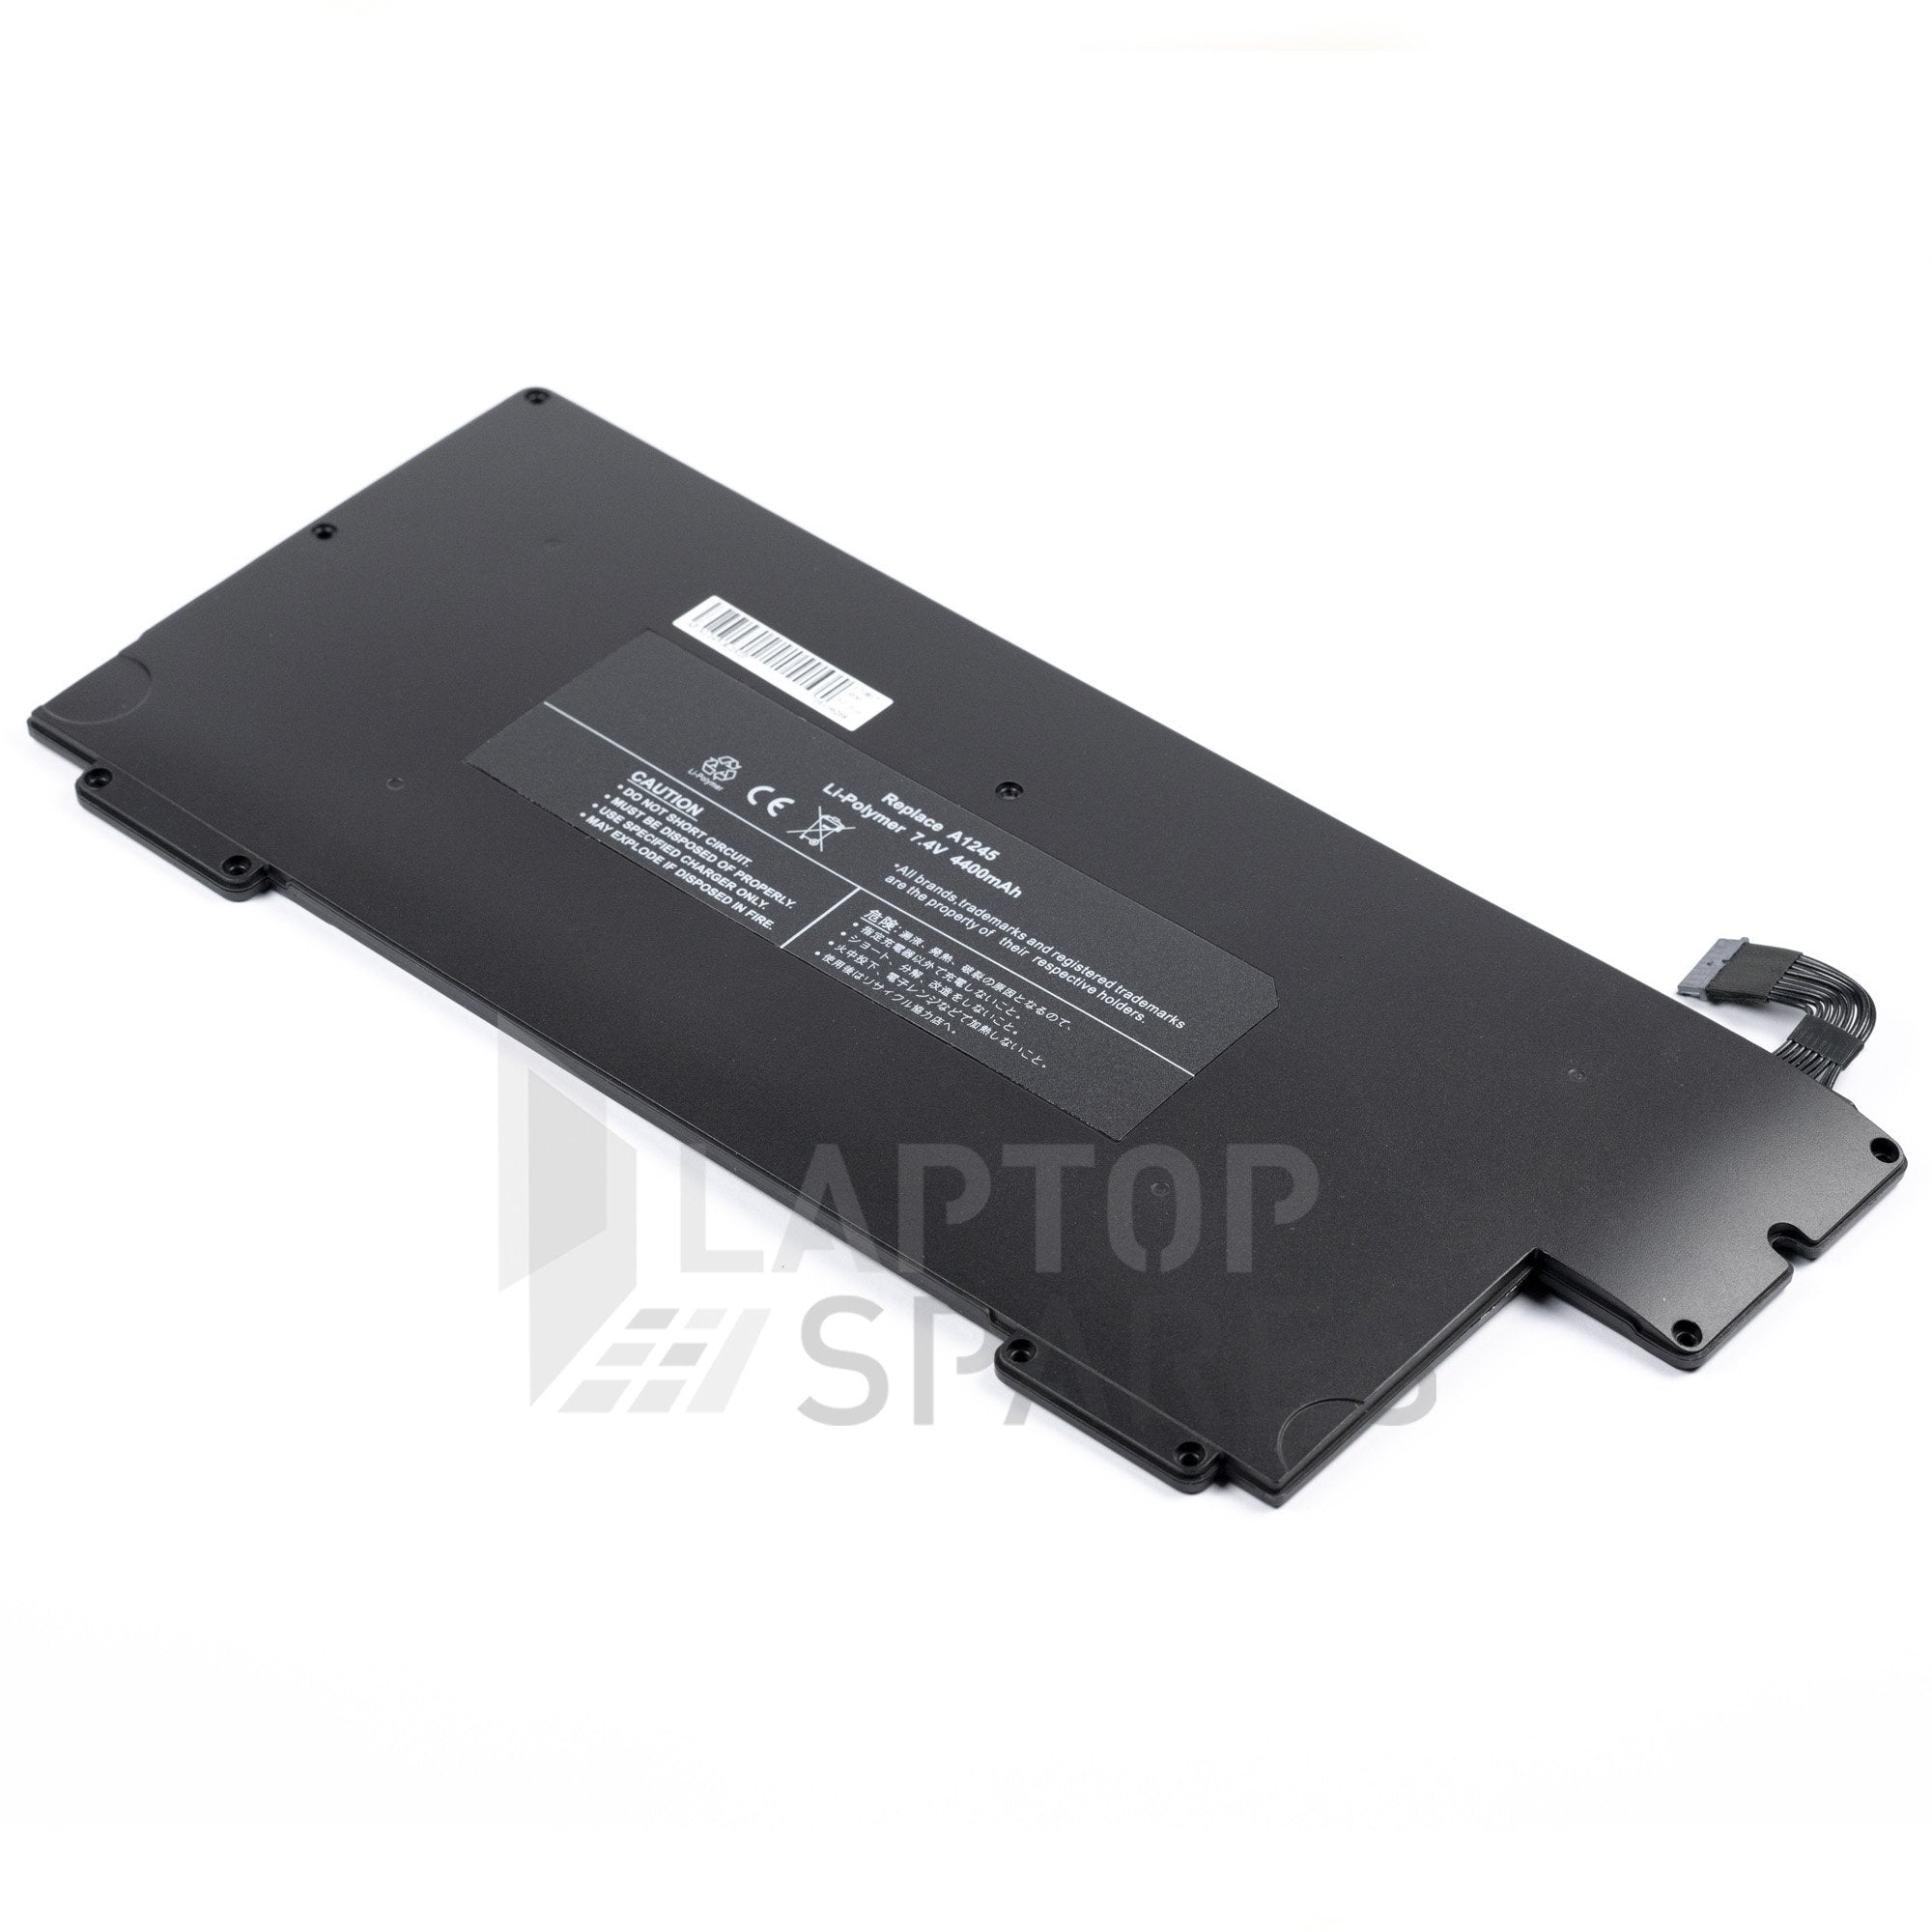 Apple MacBook Air 13 inch A1304 4400mAh 3 Cell Battery